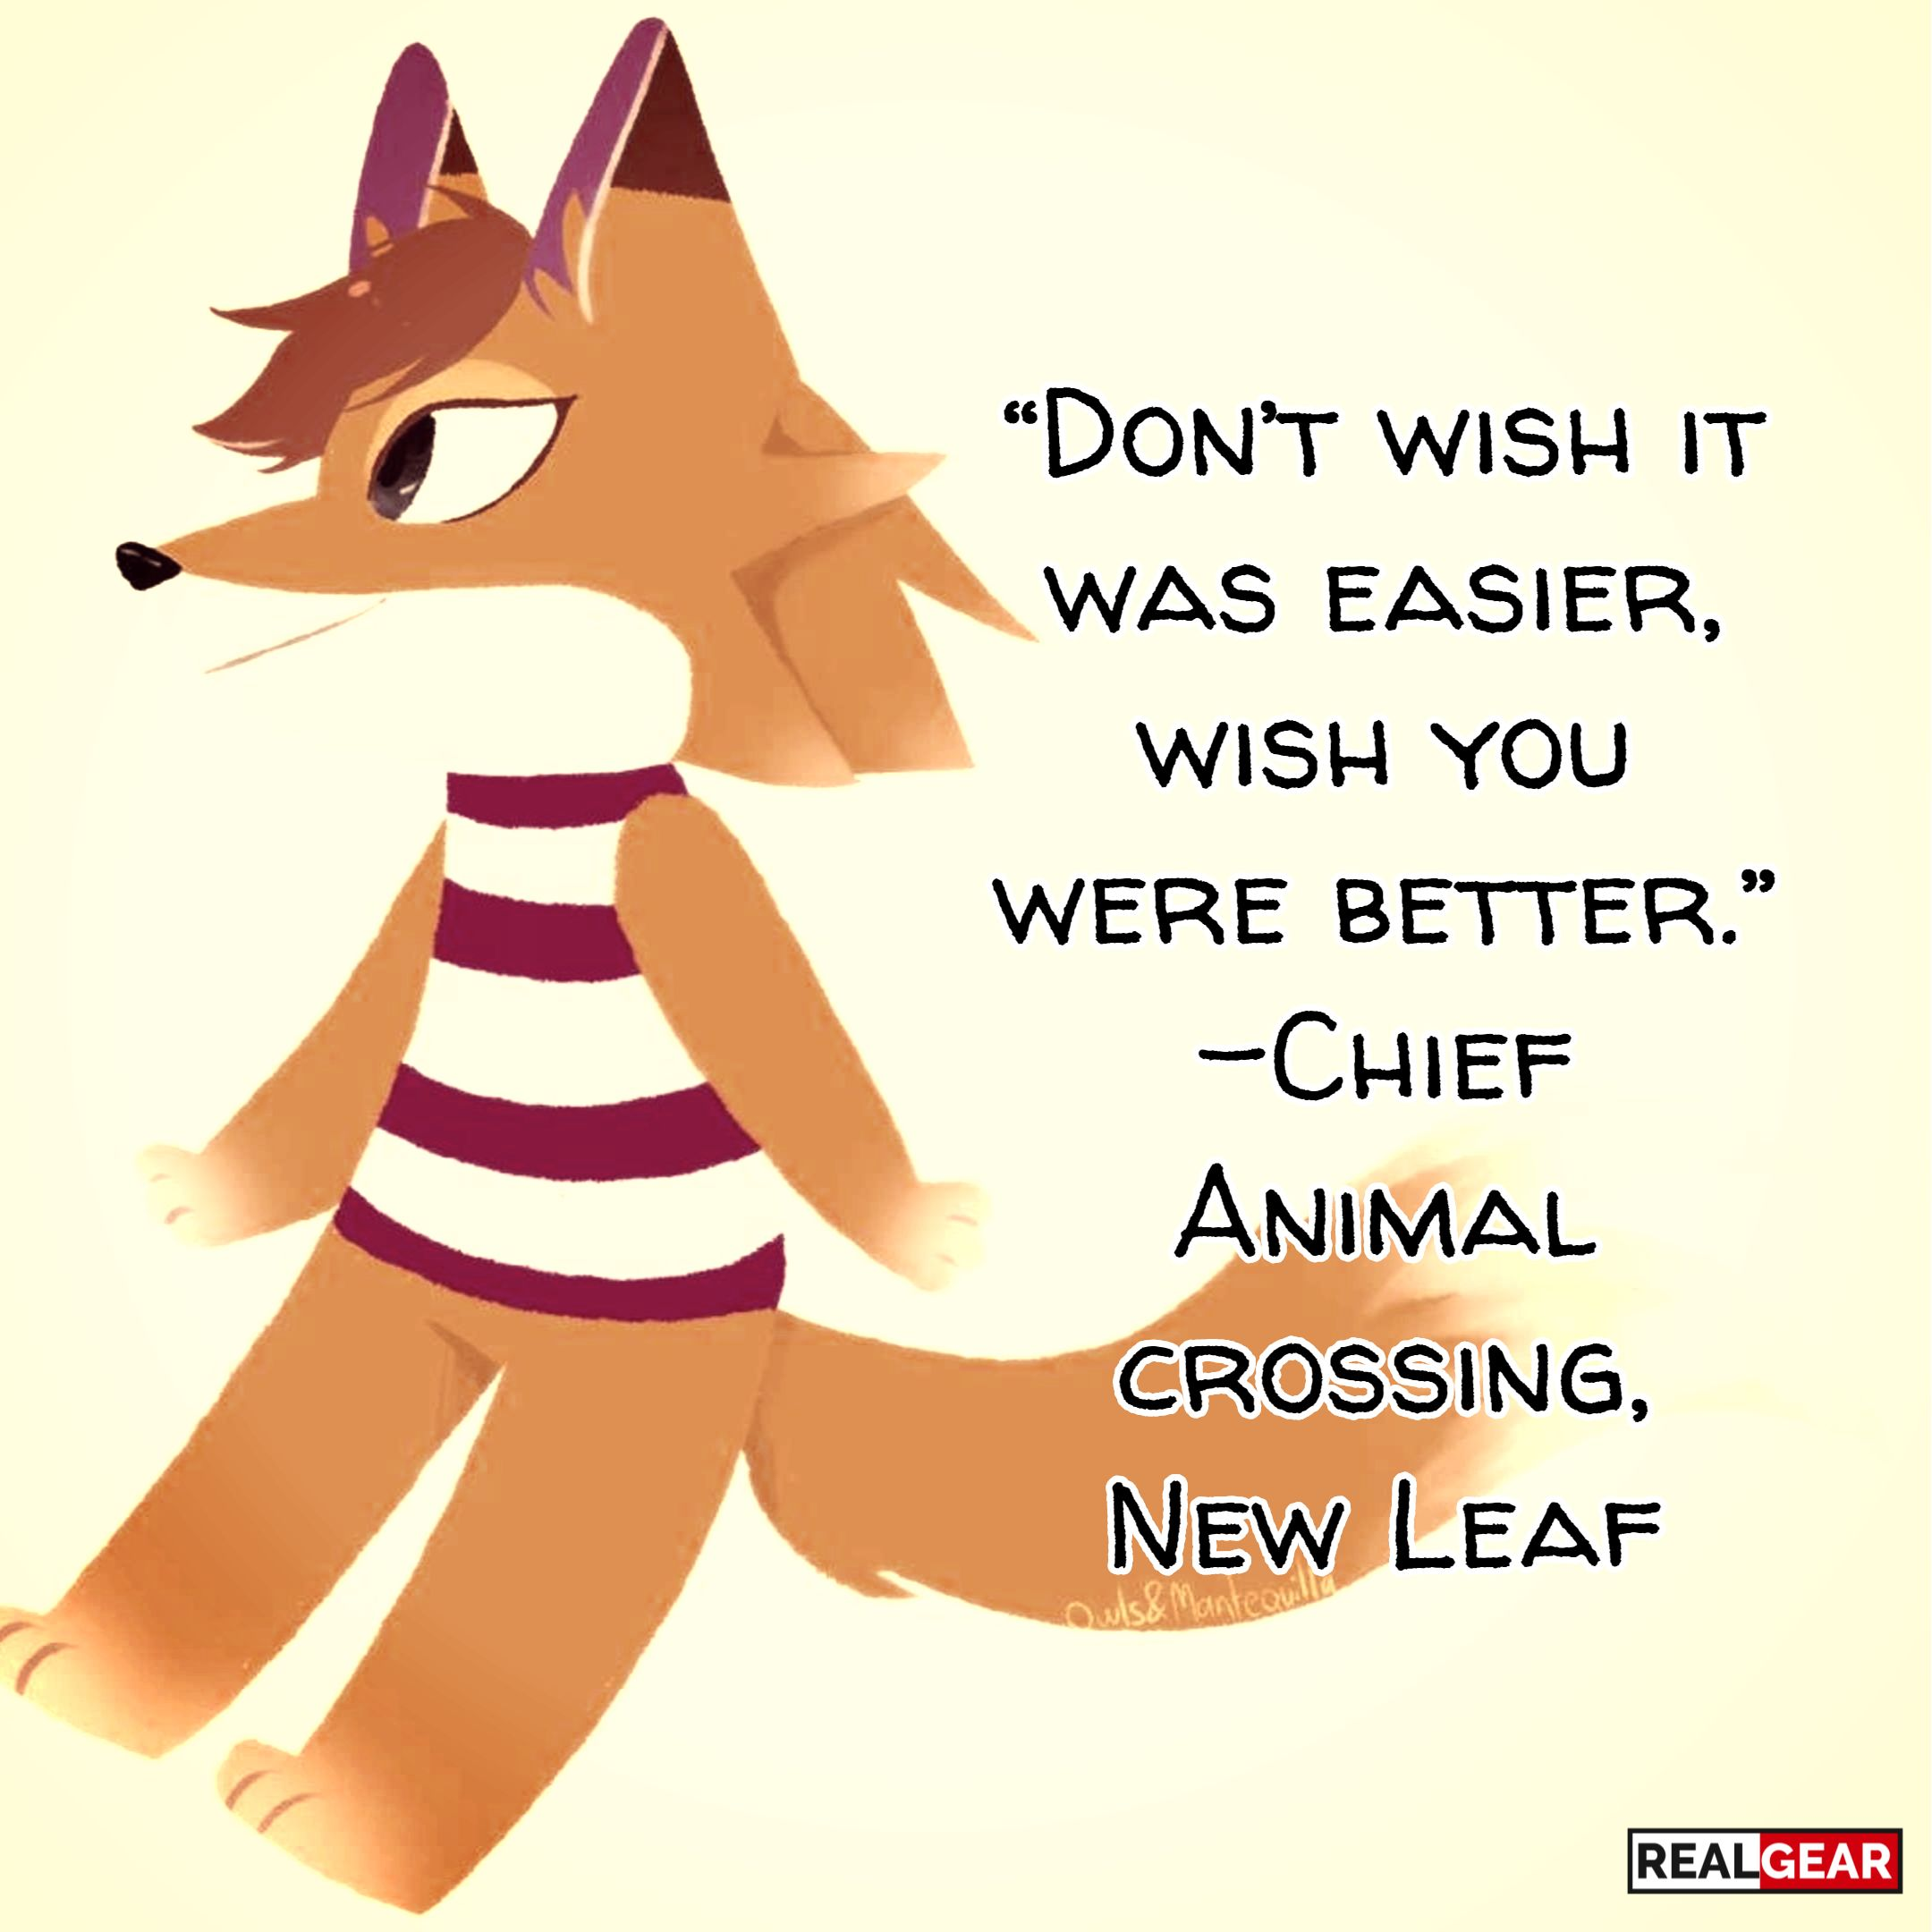 Videogamequotes Gamingquotes Gamingcommunity Animalcrossing Chief Realgear Animal Crossing Fan Art Animal Crossing Video Game Quotes